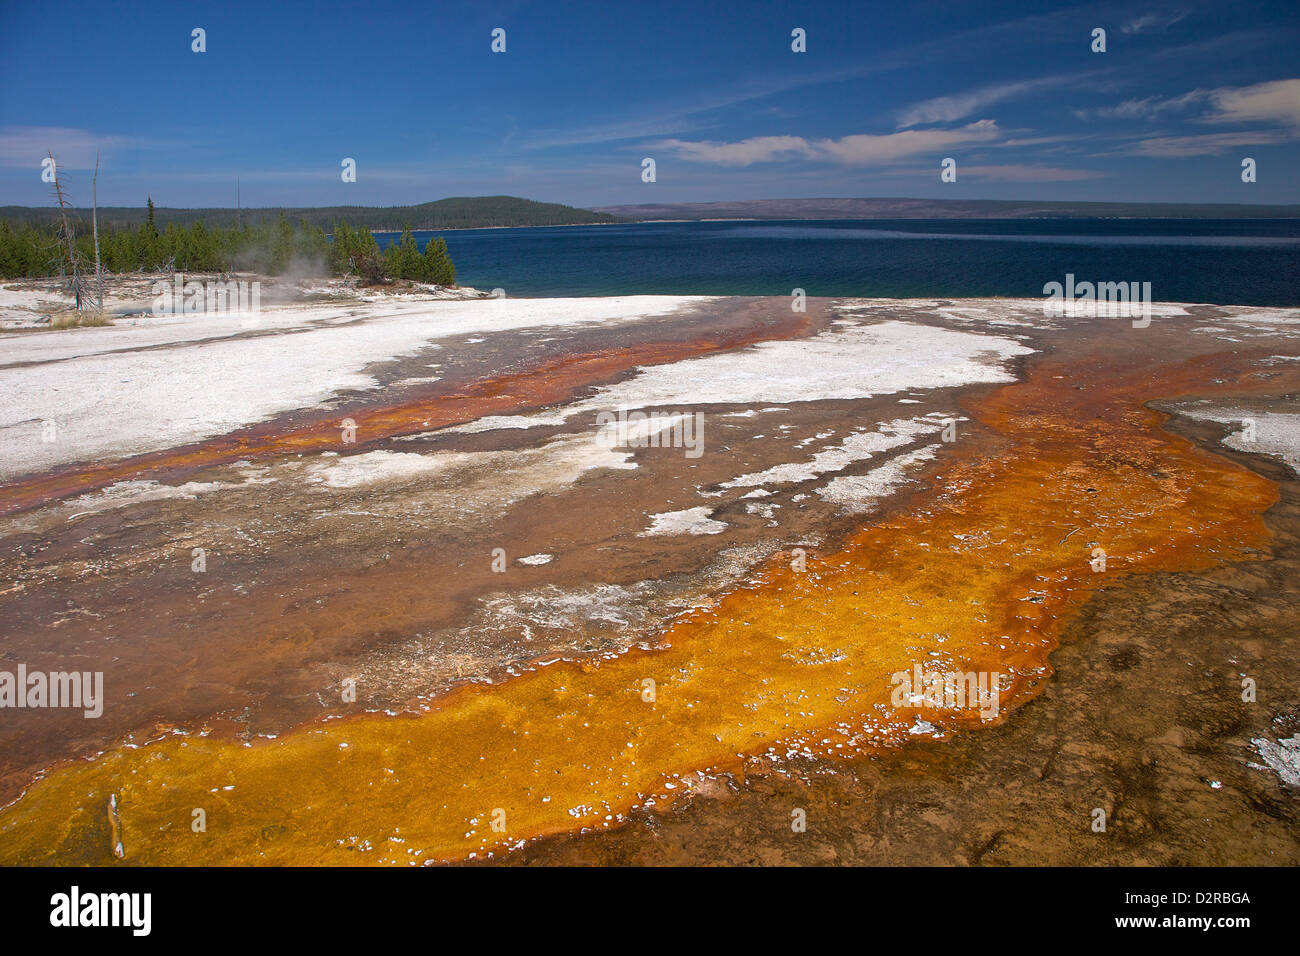 Run off area near Black Pool Spring, West Thumb Geyser Basin, Yellowstone National Park, Wyoming, USA - Stock Image